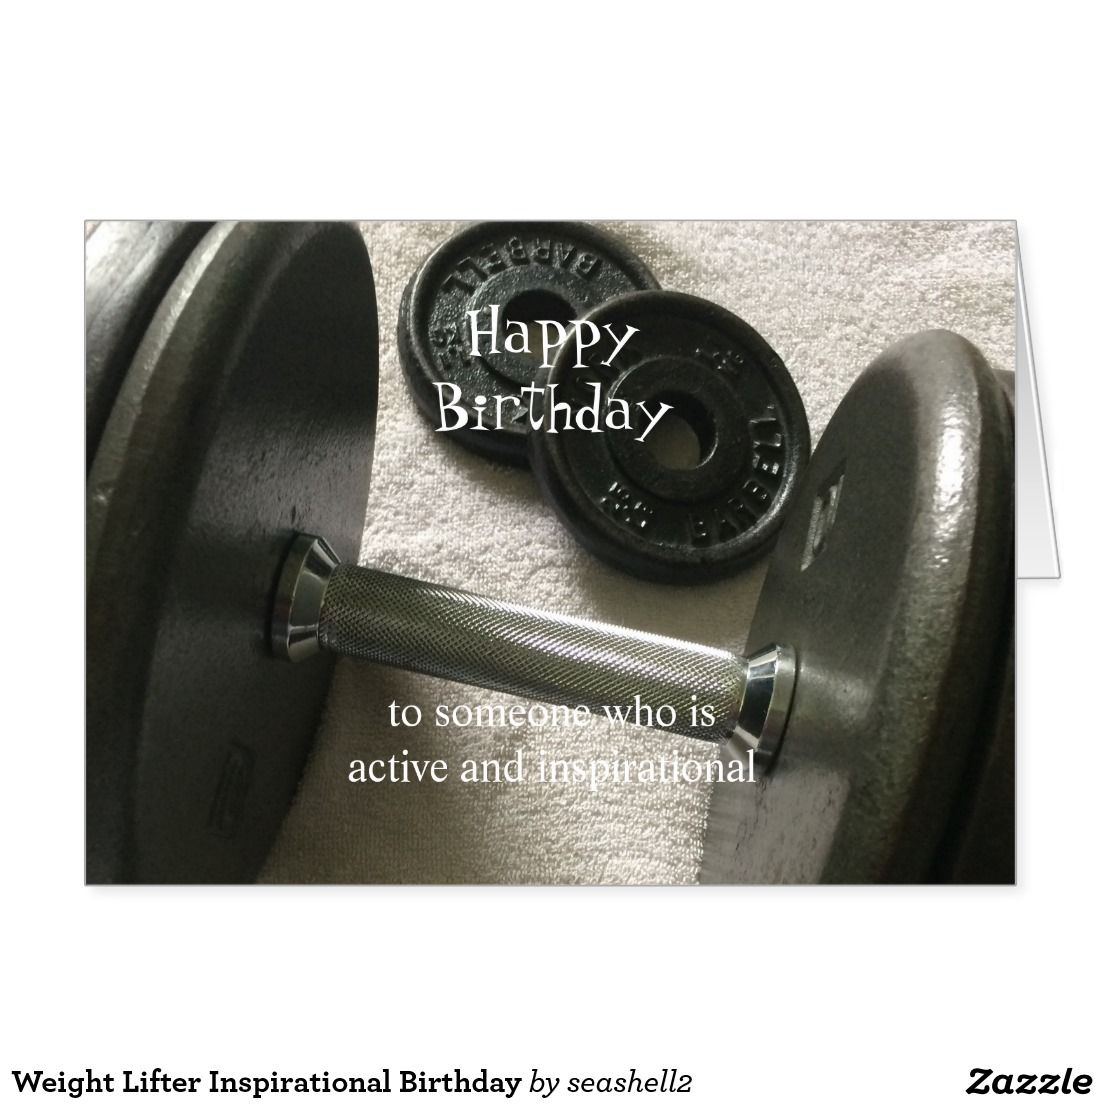 Weight lifter inspirational birthday card weight lifters and weight lifter inspirational birthday card m4hsunfo